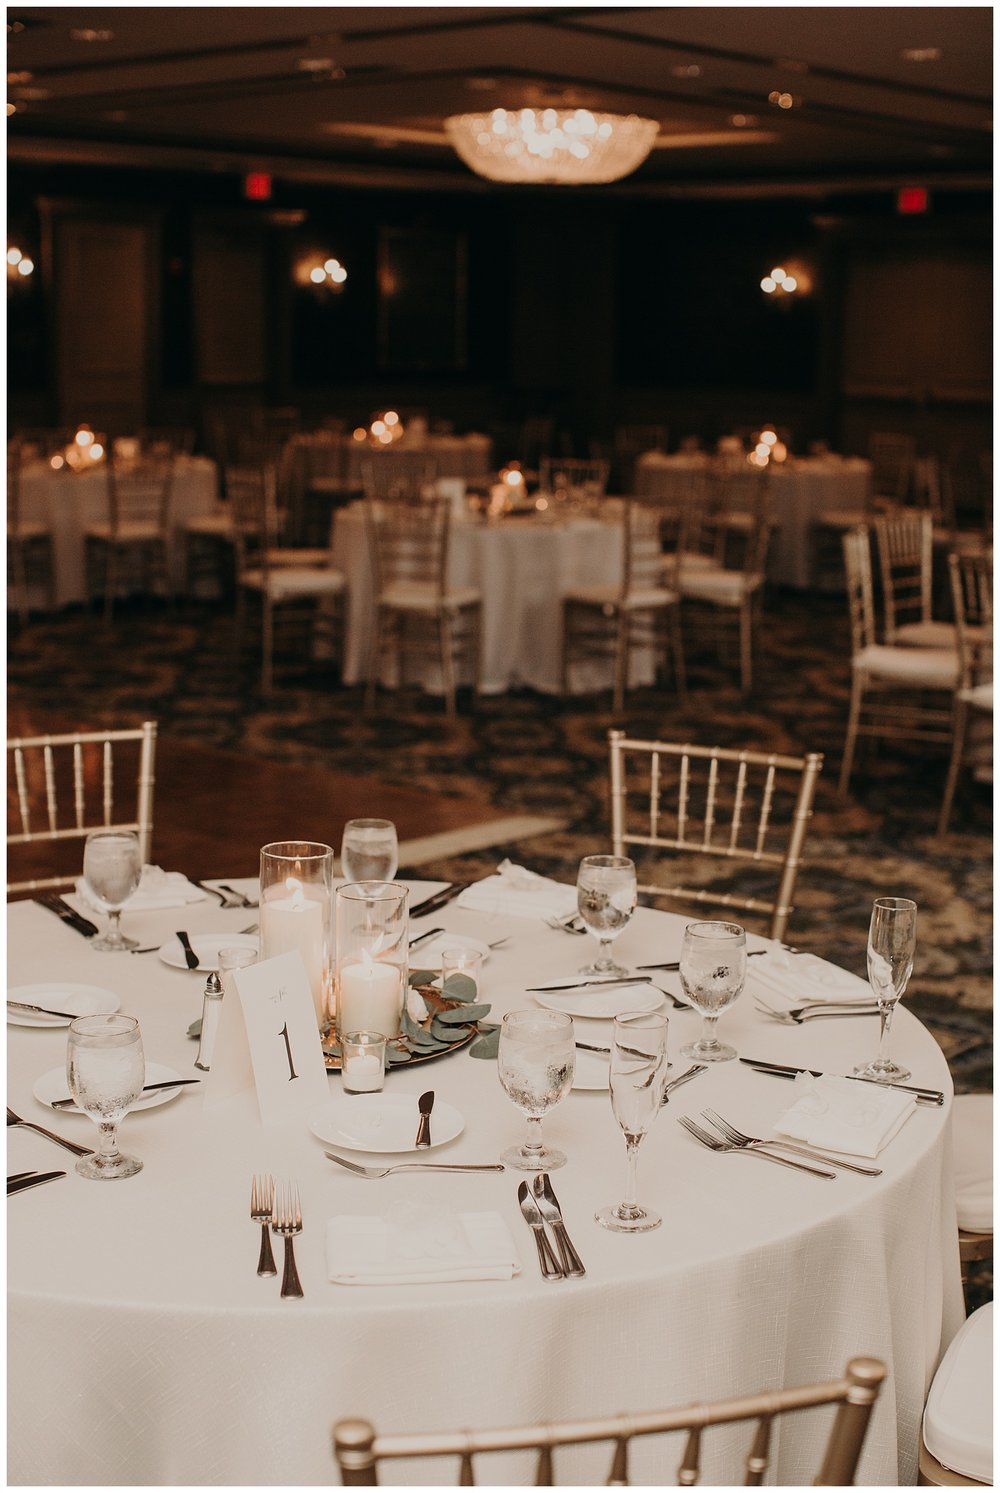 Mike_Kelly_Hotel_Viking_Newport_Rhode_Island_Wedding_027.jpeg